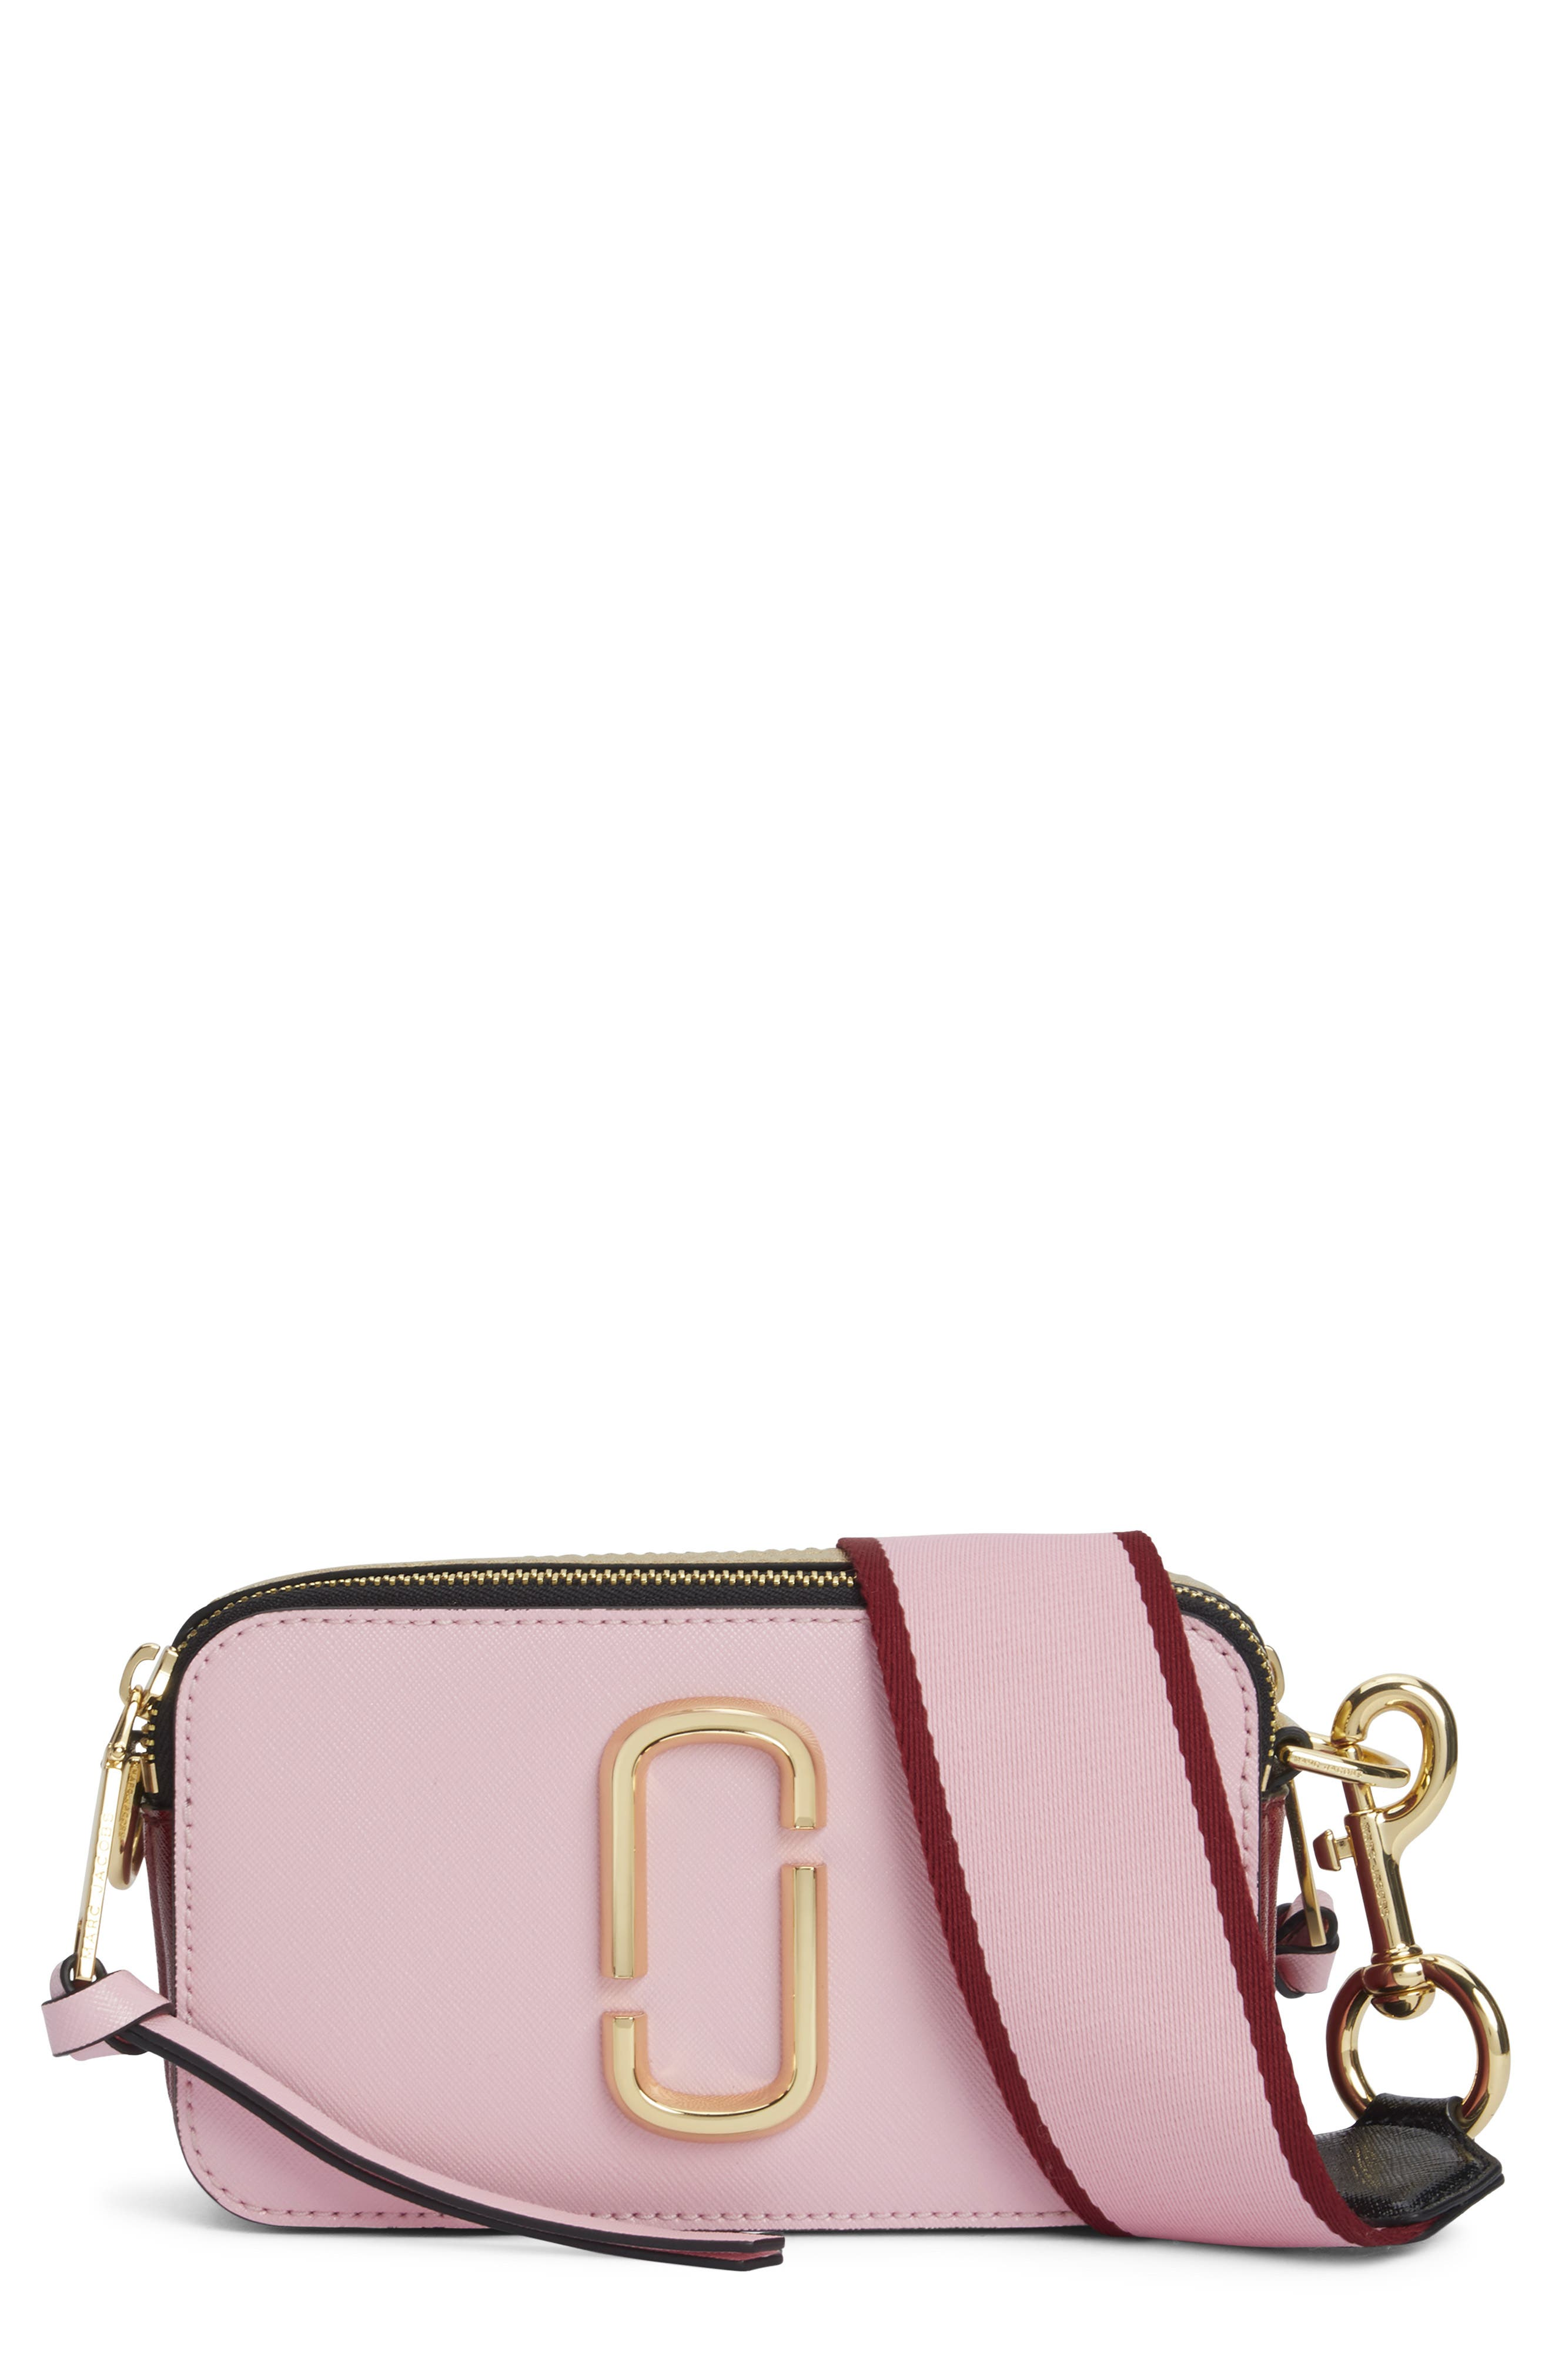 MARC JACOBS, Snapshot Crossbody Bag, Main thumbnail 1, color, BABY PINK/ RED